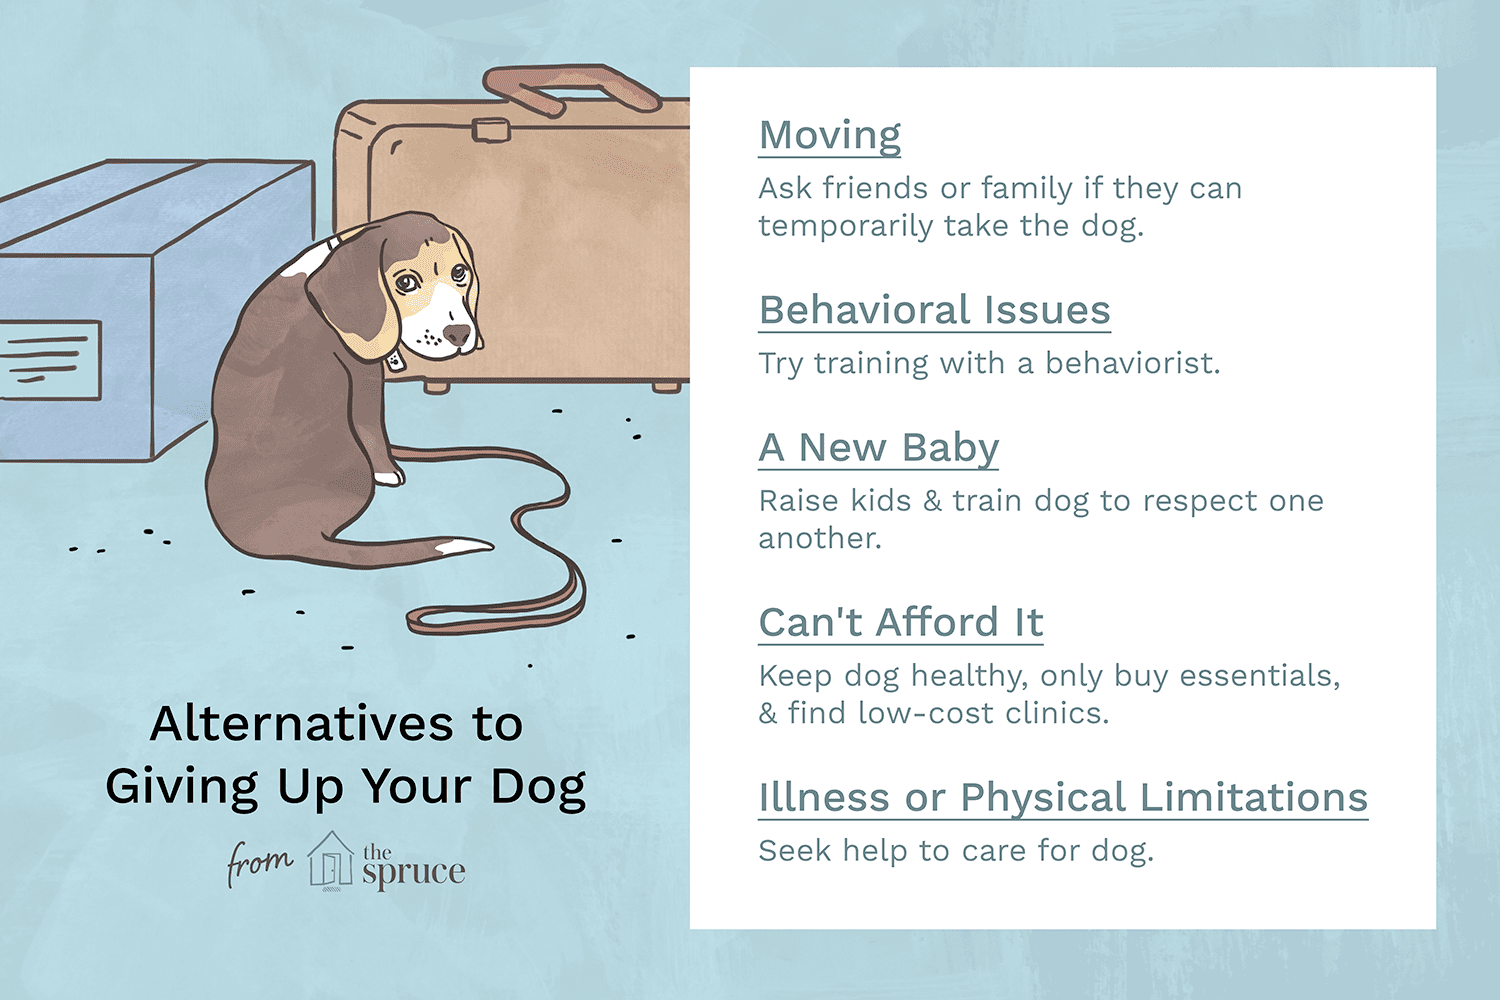 Reasons NOT to Give Up Your Dog